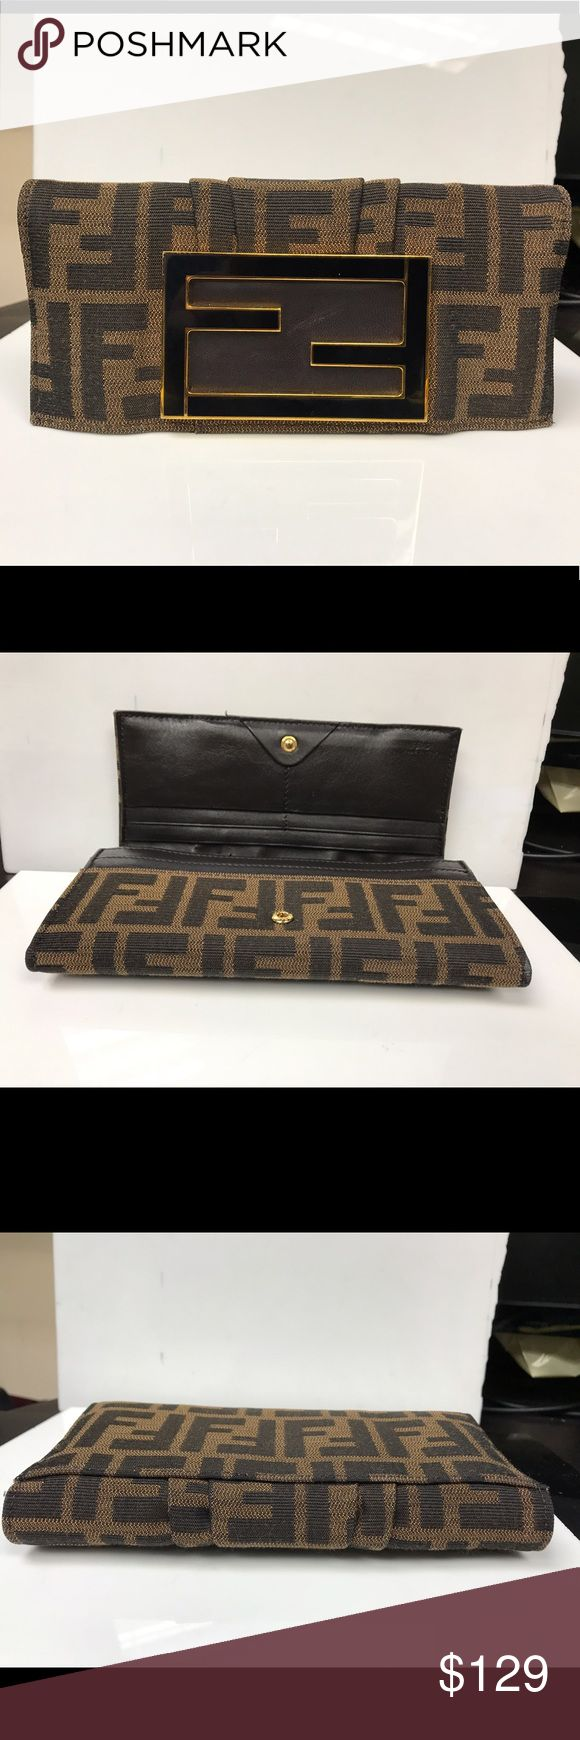 Fendi women's wristlet Brand new women's wristlet. Have small defect on logo as u can see some scratches. Except that every thing is fine. Fendi Bags Clutches & Wristlets